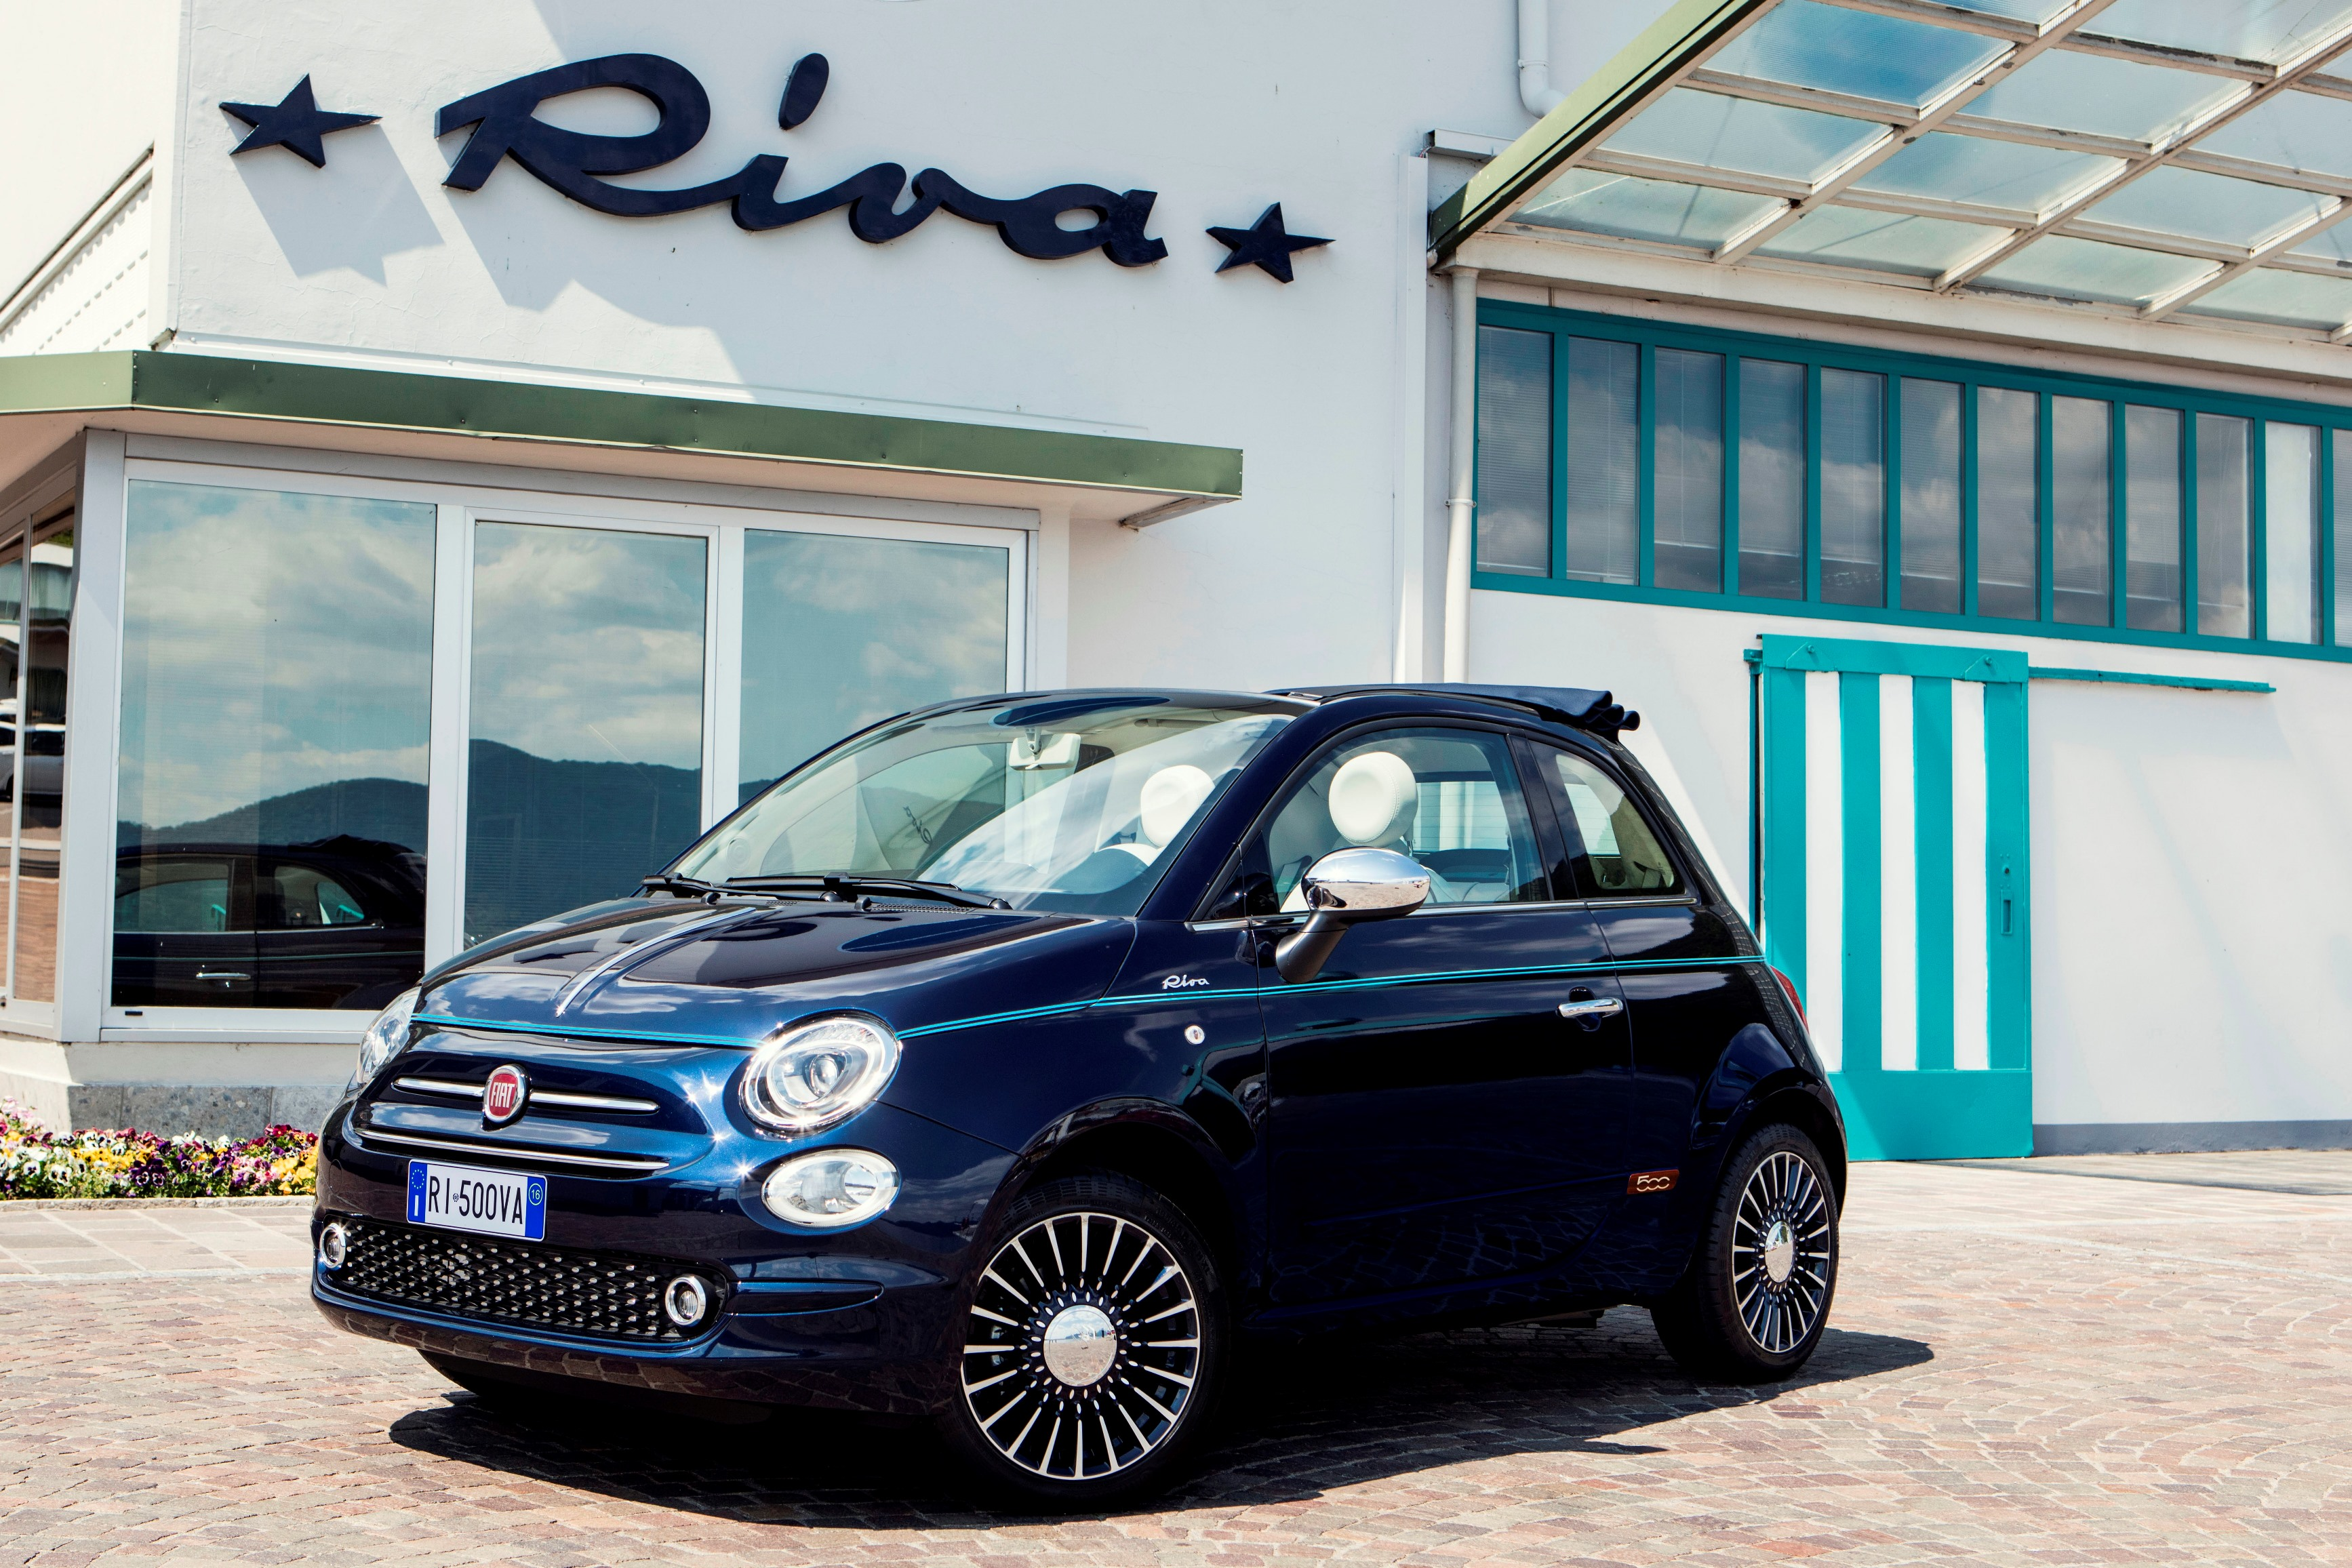 der neue fiat 500 riva die kleinste yacht der welt zeughaus garage ag. Black Bedroom Furniture Sets. Home Design Ideas